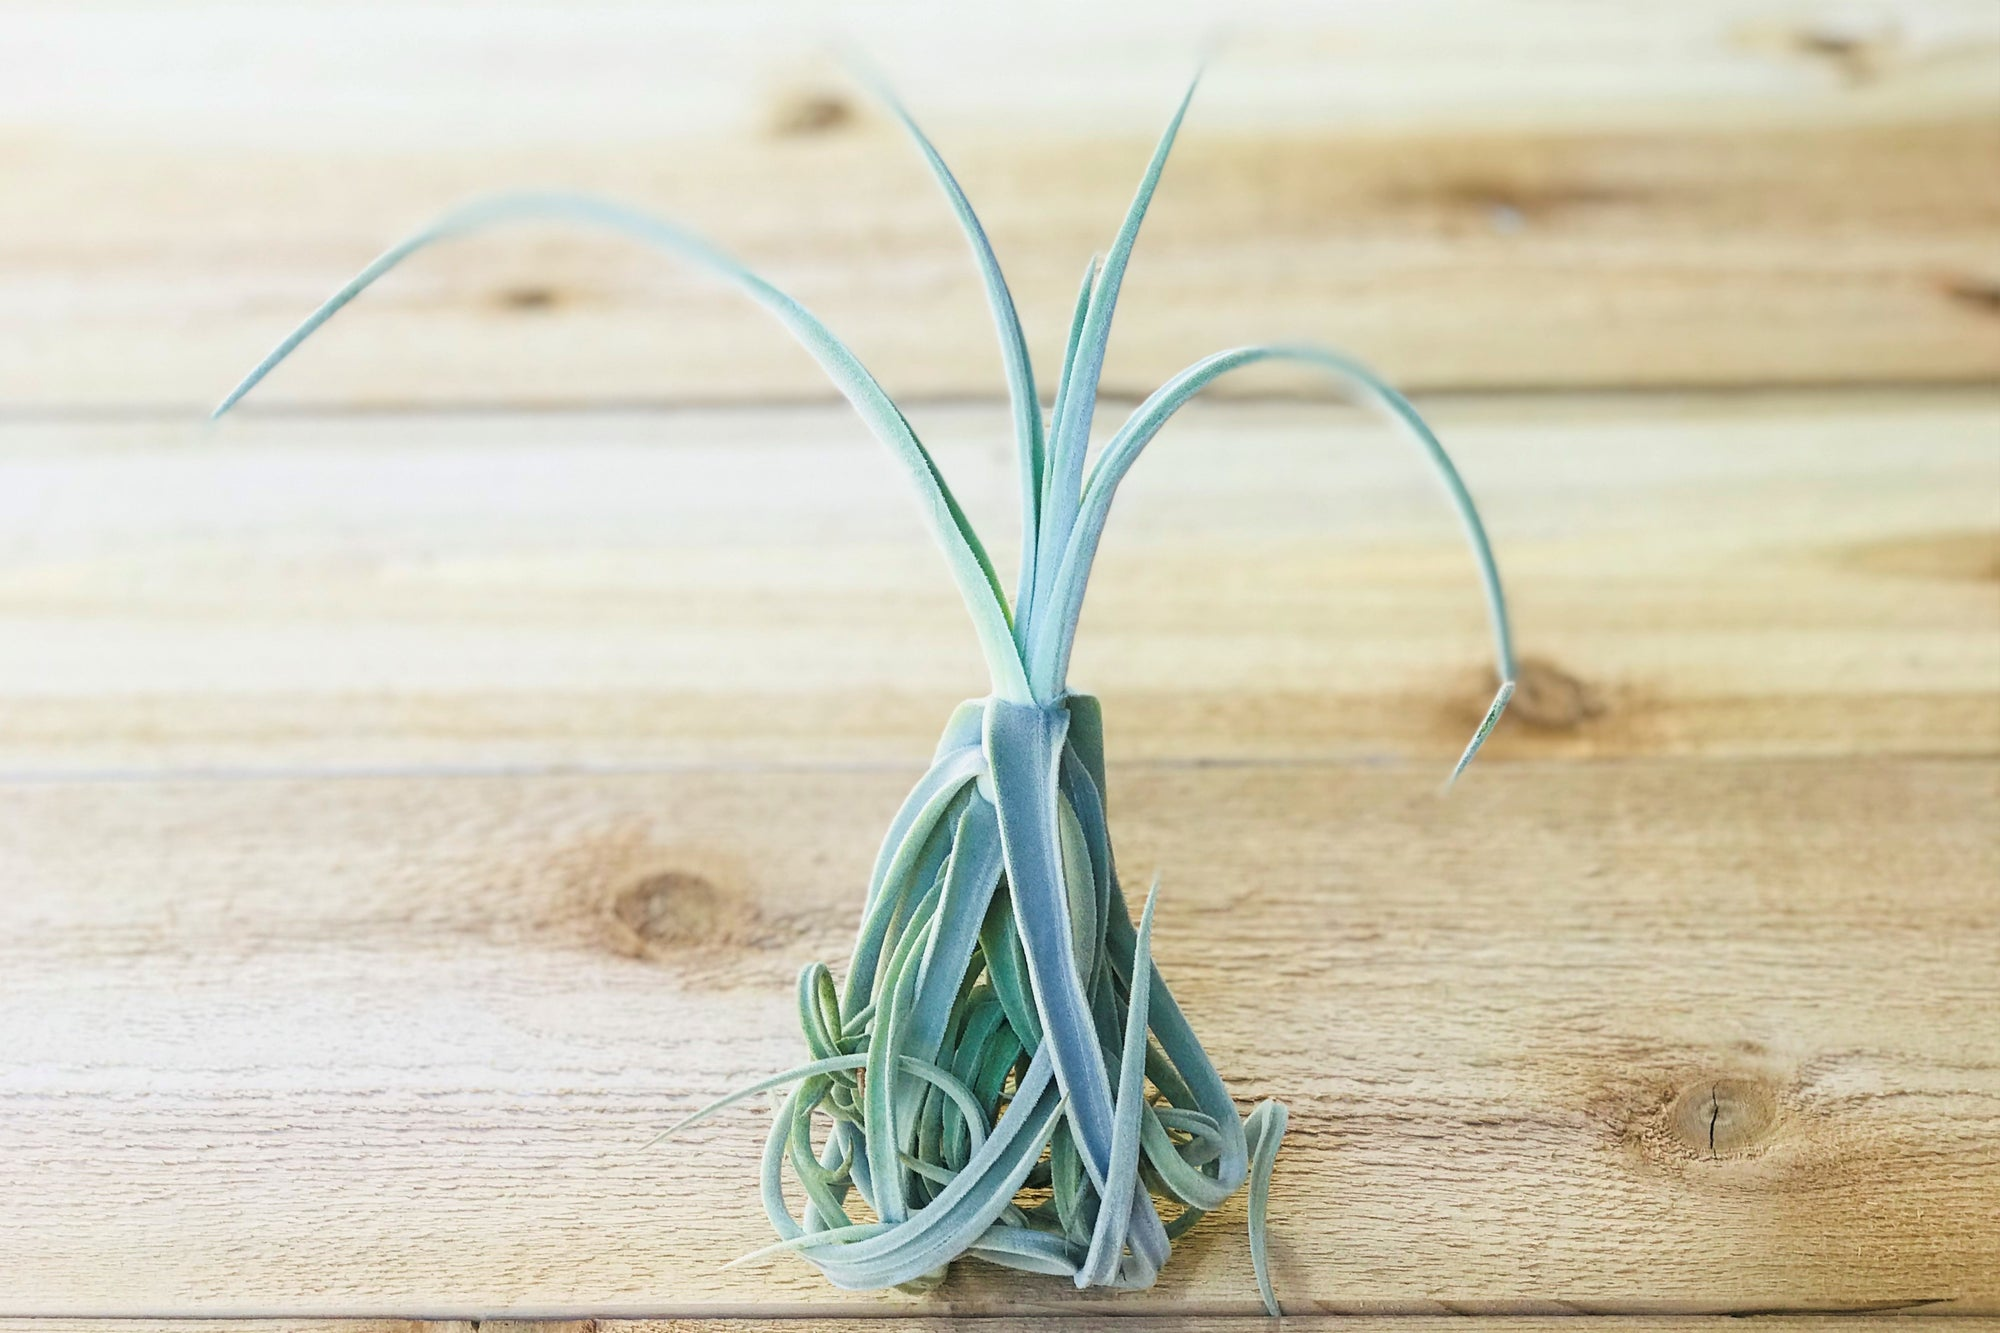 Unique Tillandsia Duratii - Thick, Curly Leaves - Limited Quantities [Single Plant] from AirPlantShop.com